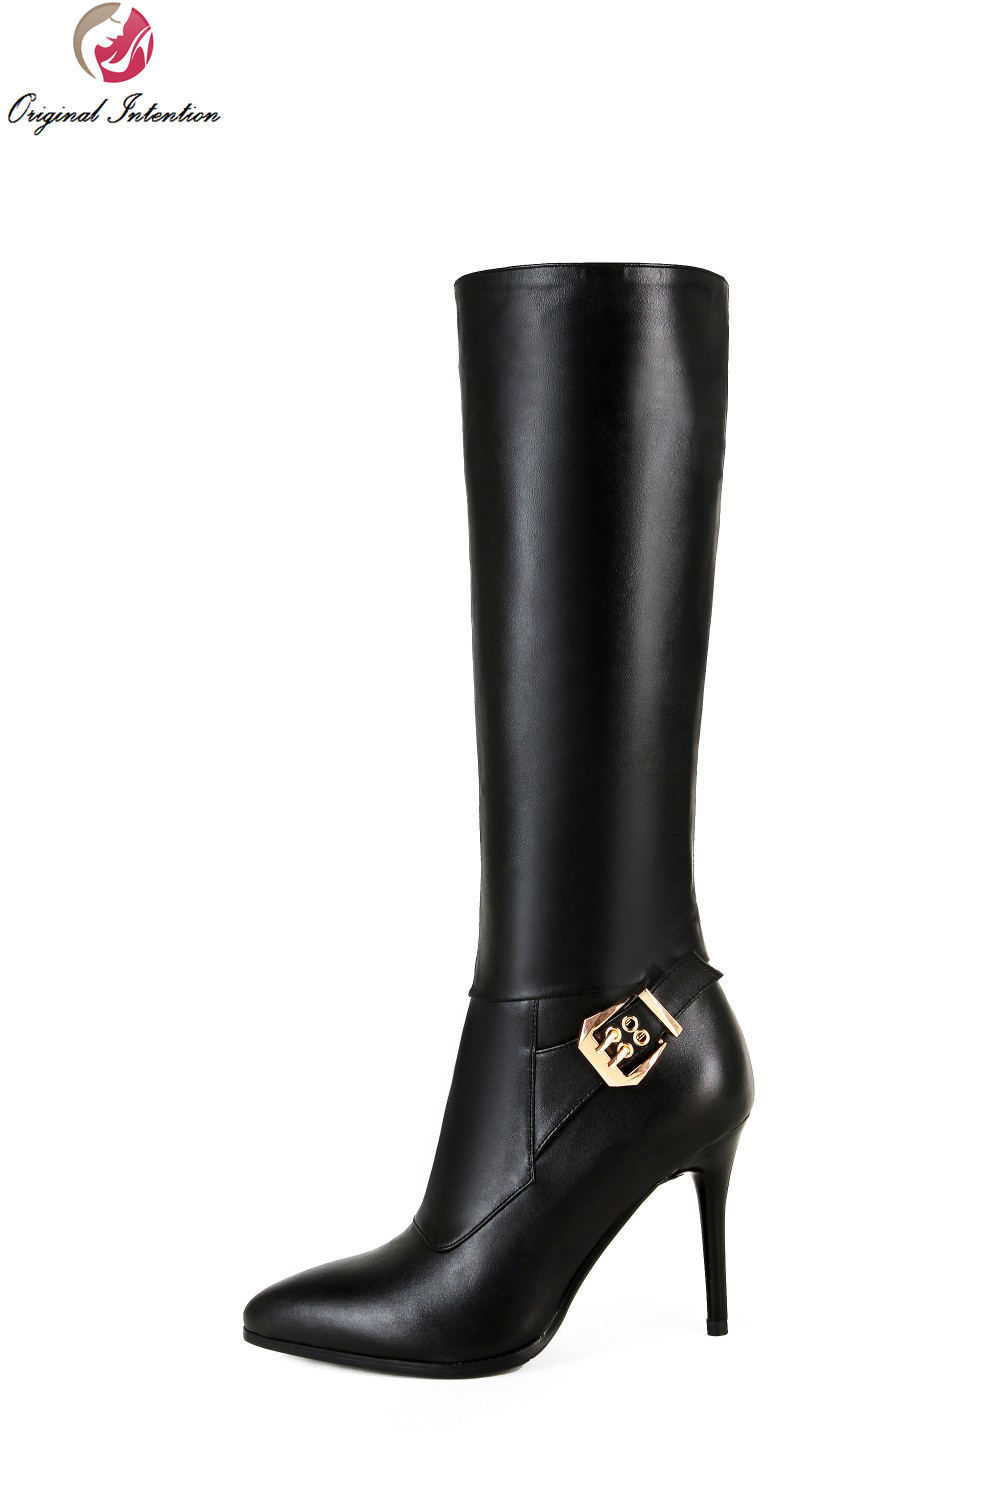 Original Intention High-quality Women Knee High Boots Nice Pointed Toe Thin Heels Boots Popular Black Shoes Woman US Size 4-10.5 original intention high quality women knee high boots nice pointed toe thin heels boots popular black shoes woman us size 4 10 5